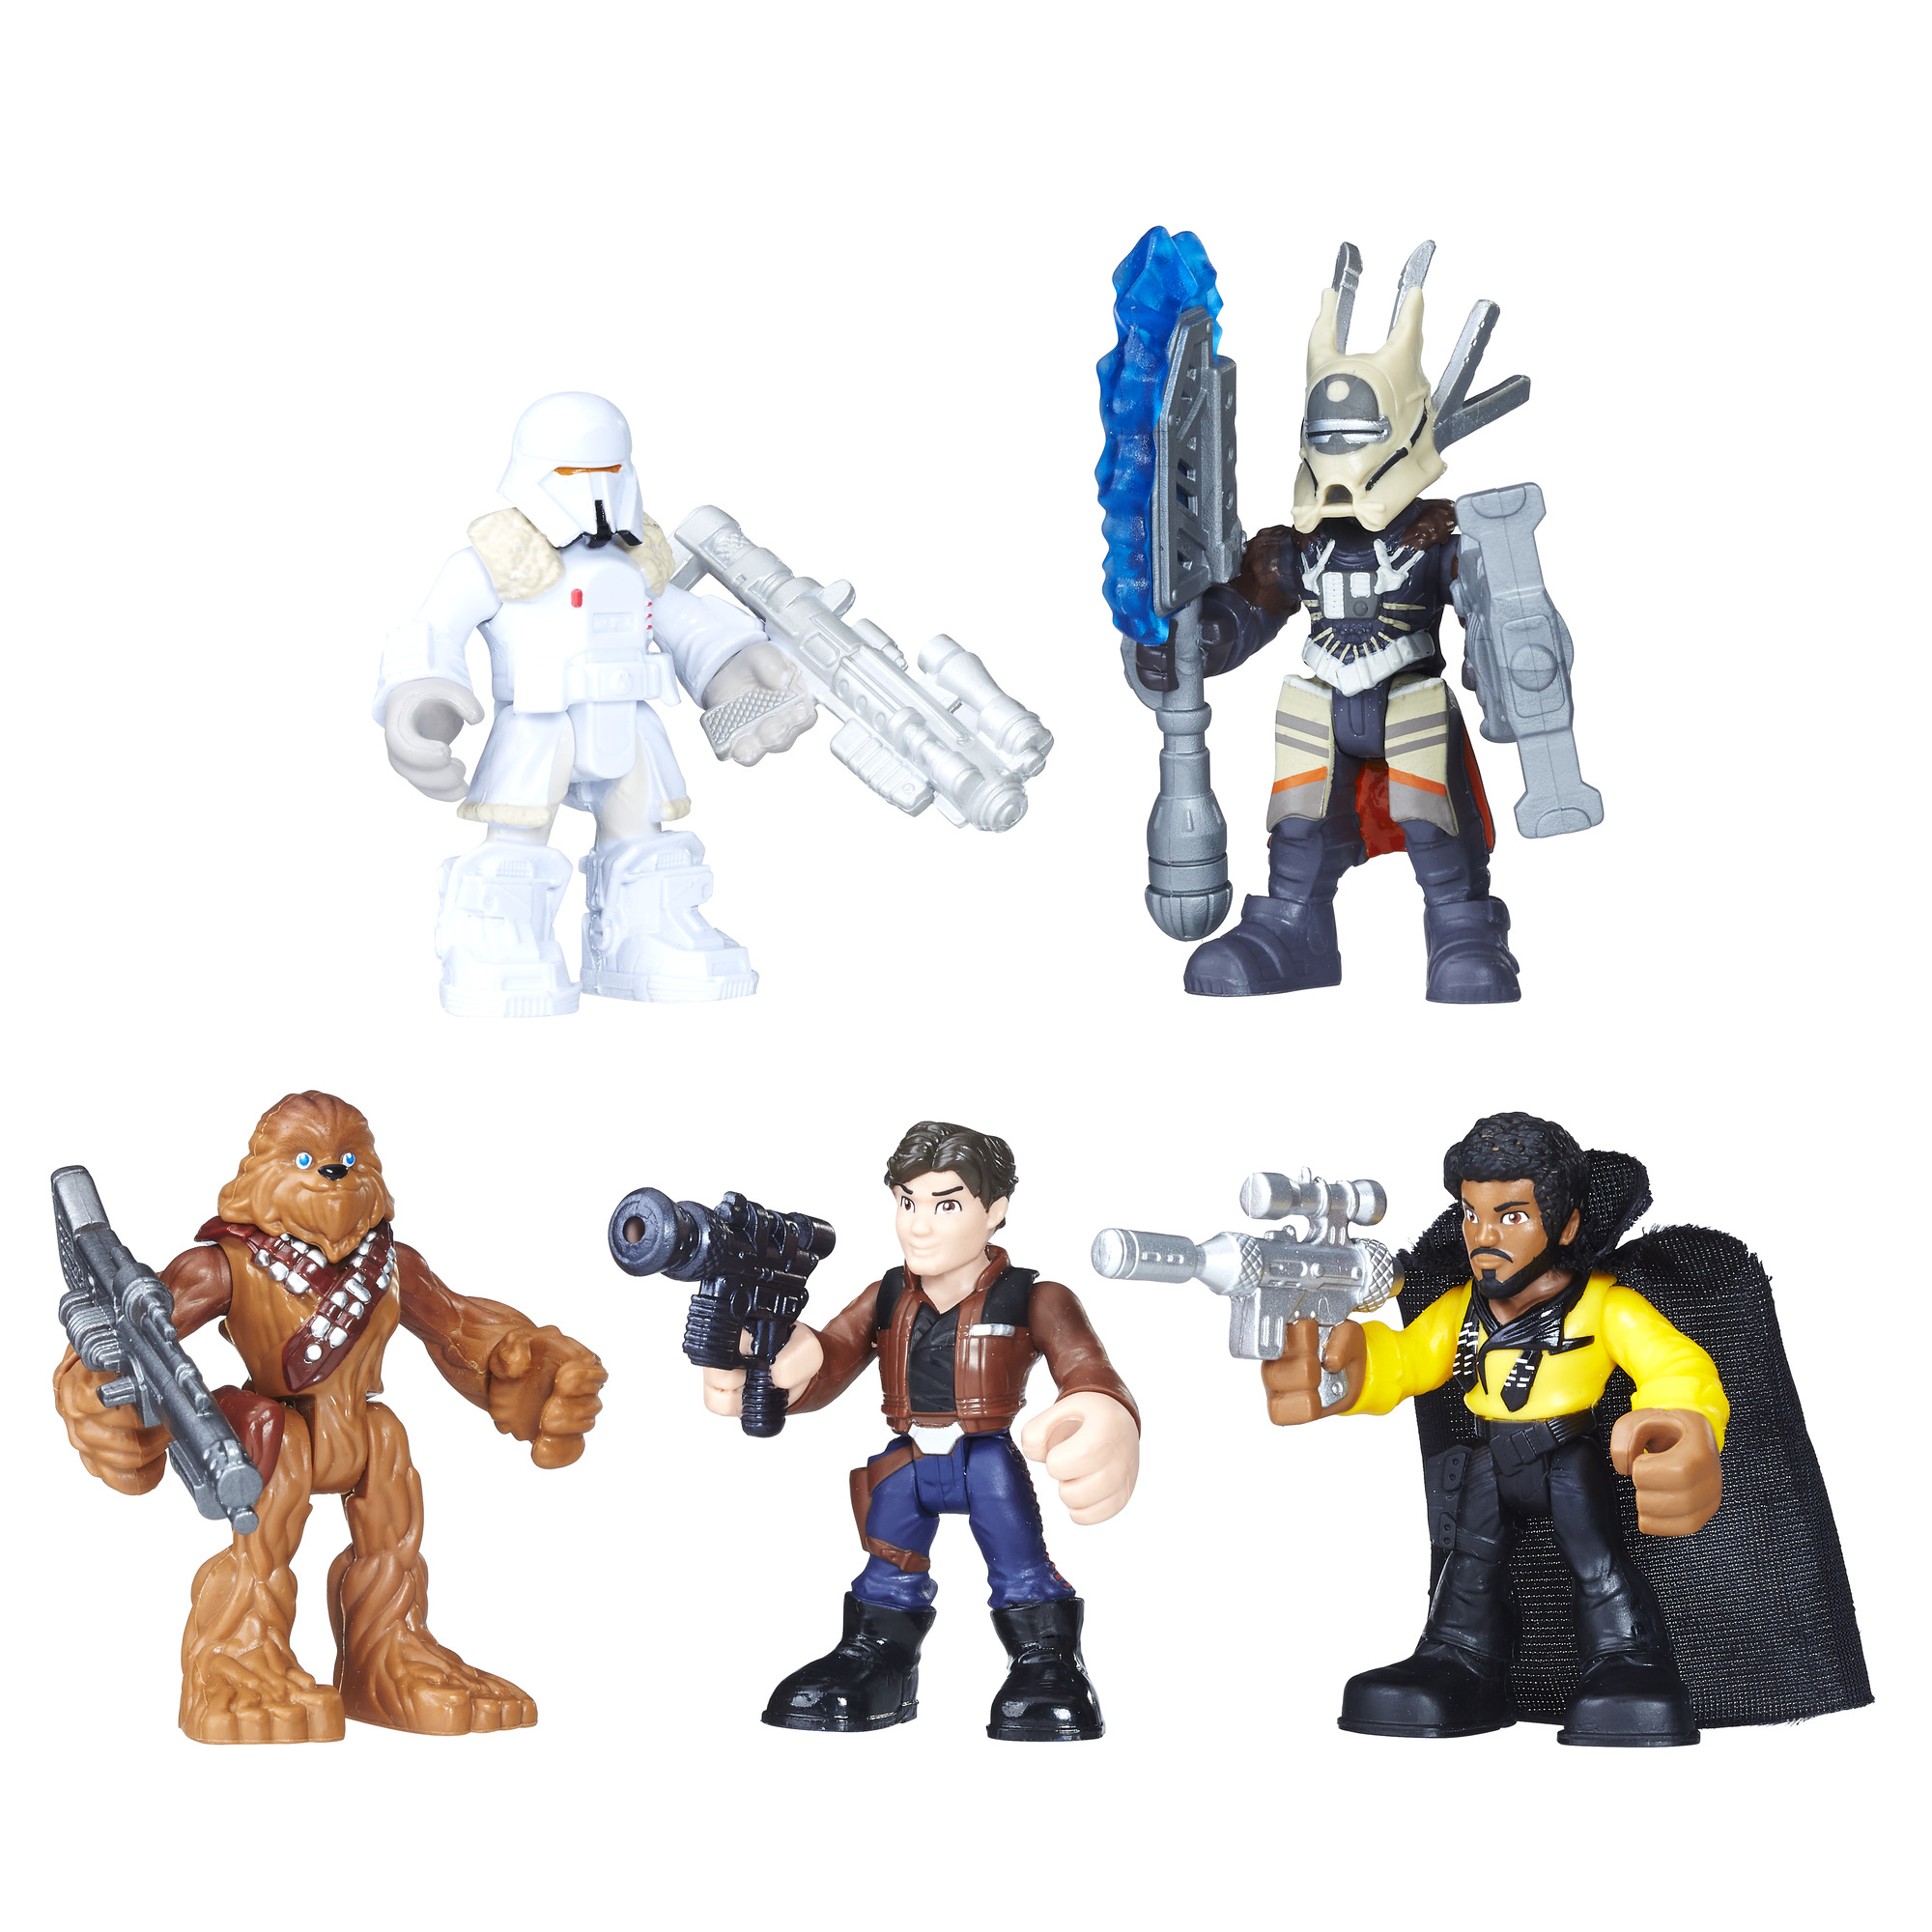 Solo: ASWS Galactic Heroes Smugglers and Scoundrels Pack 2